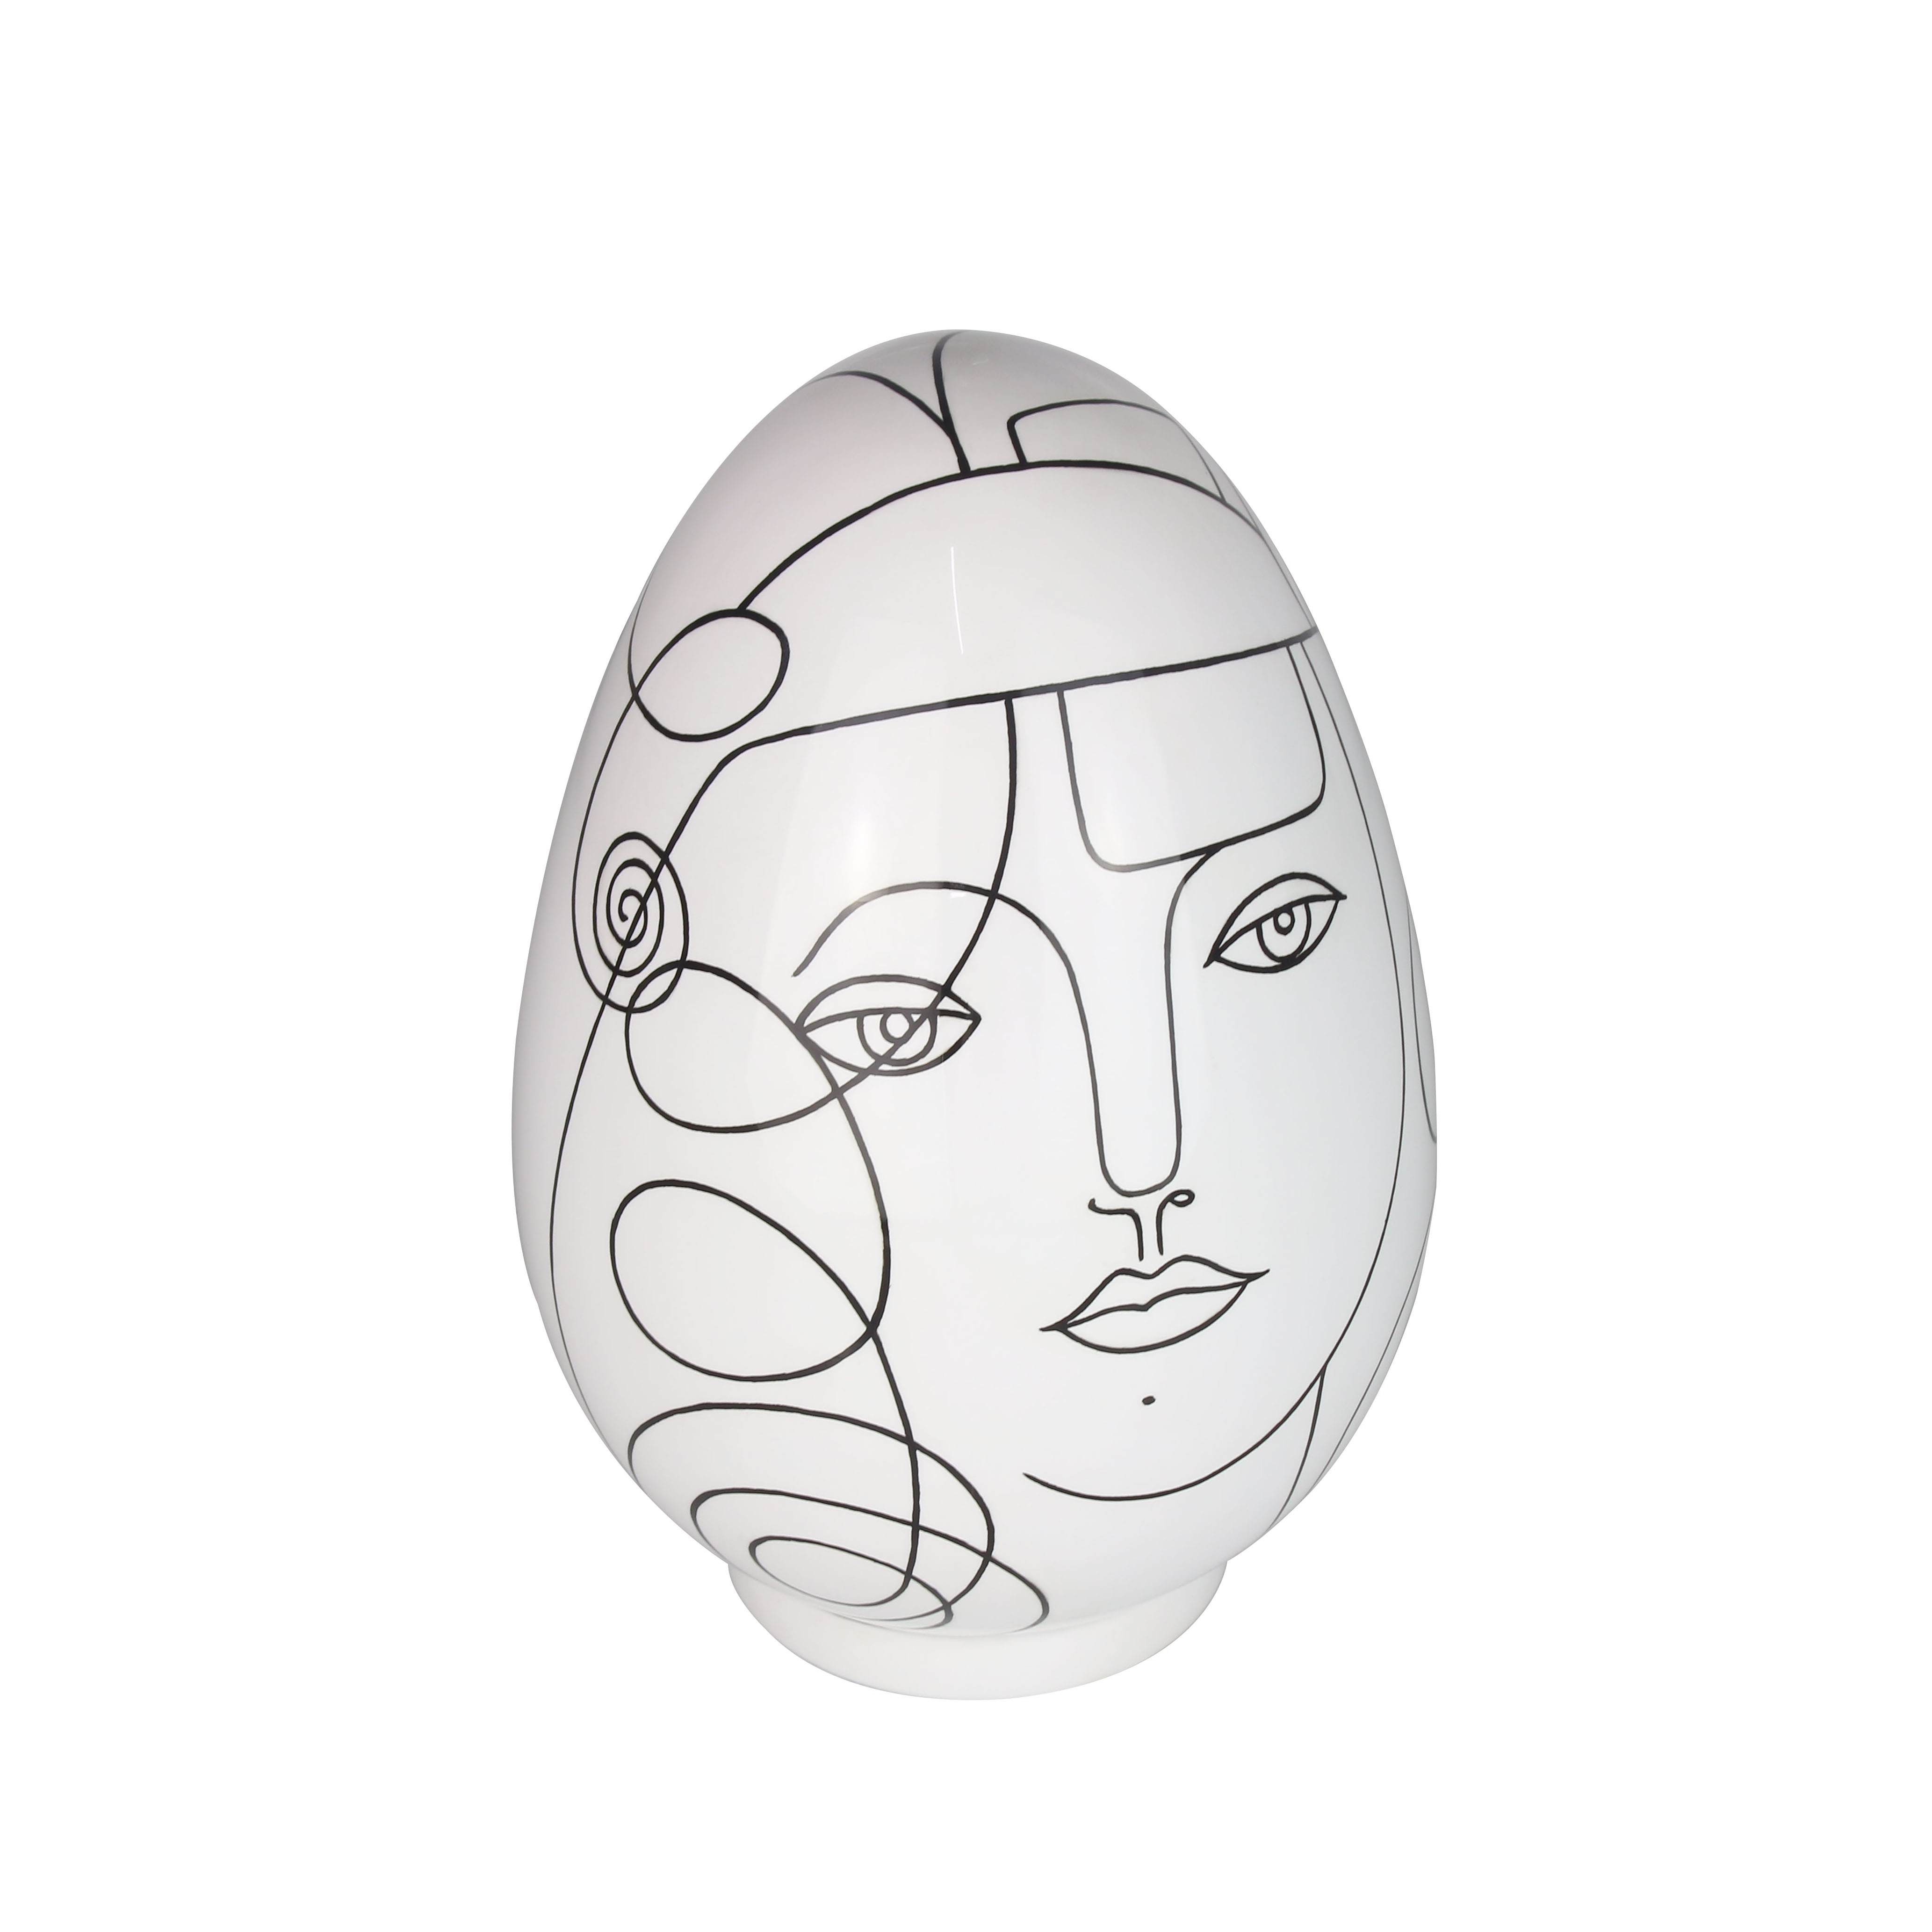 Handpainted Egg Sculpture